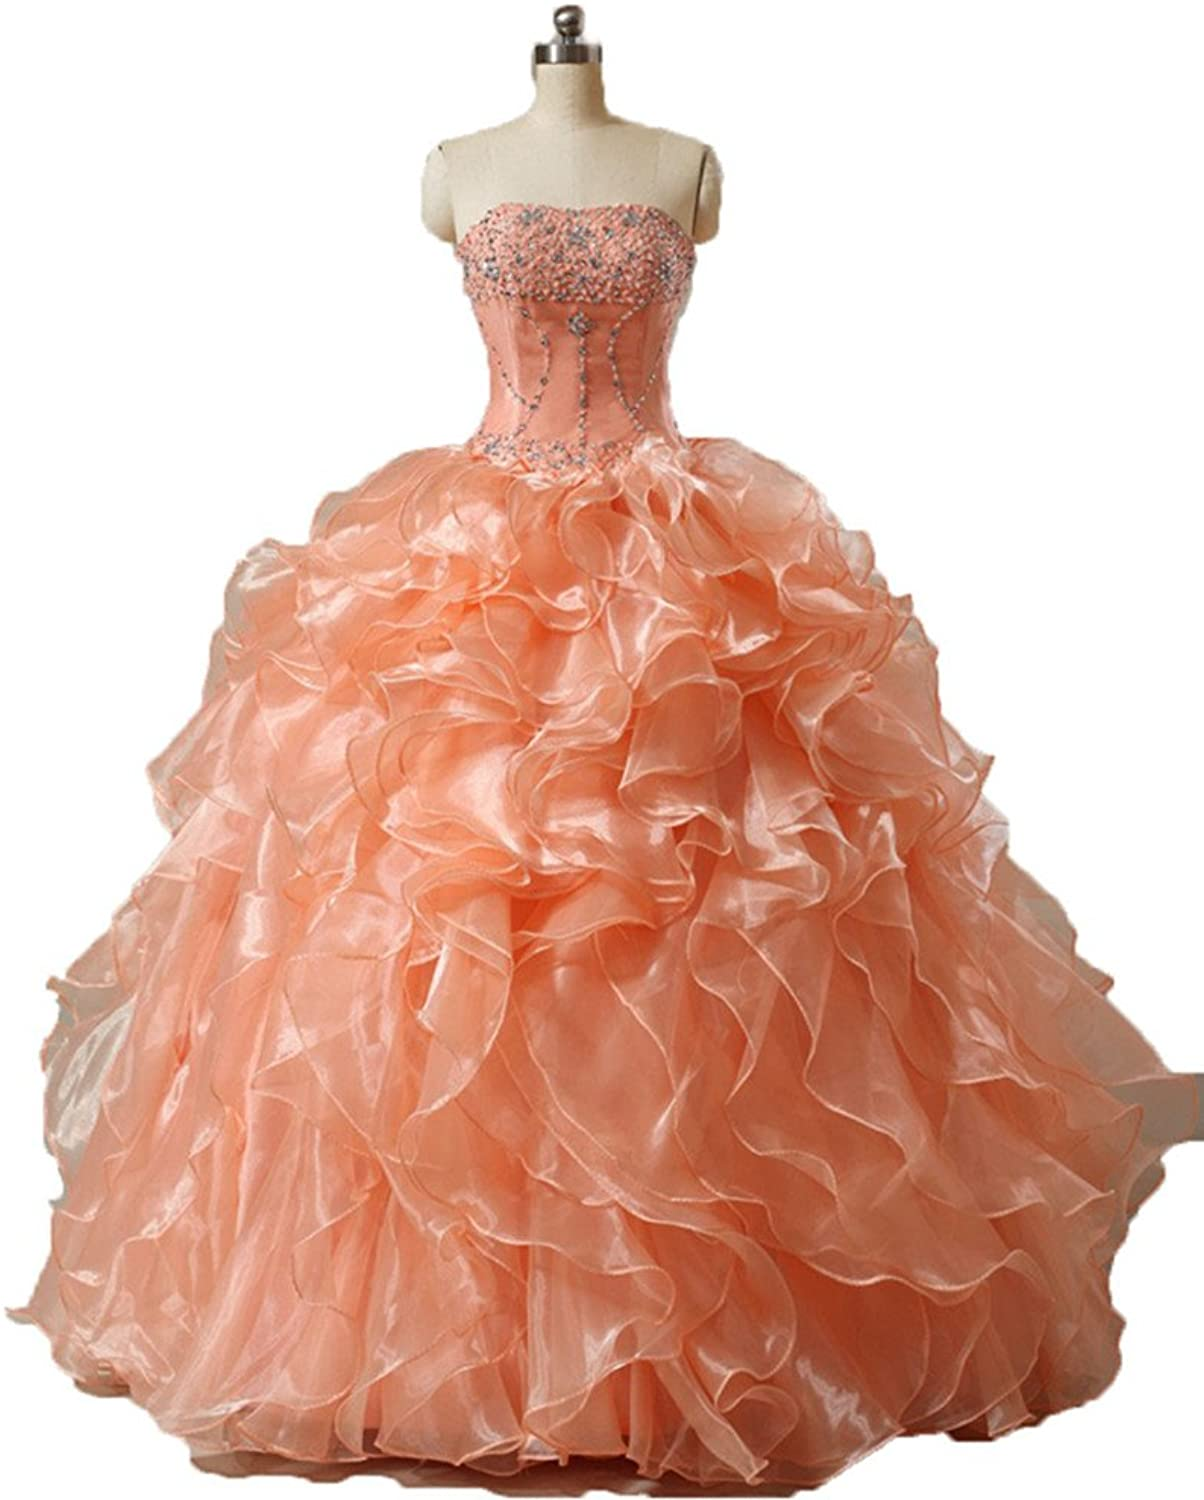 Kaitaijidian Women's Prom Gowns Sweetheart Ball Gown Quinceanera Dresses